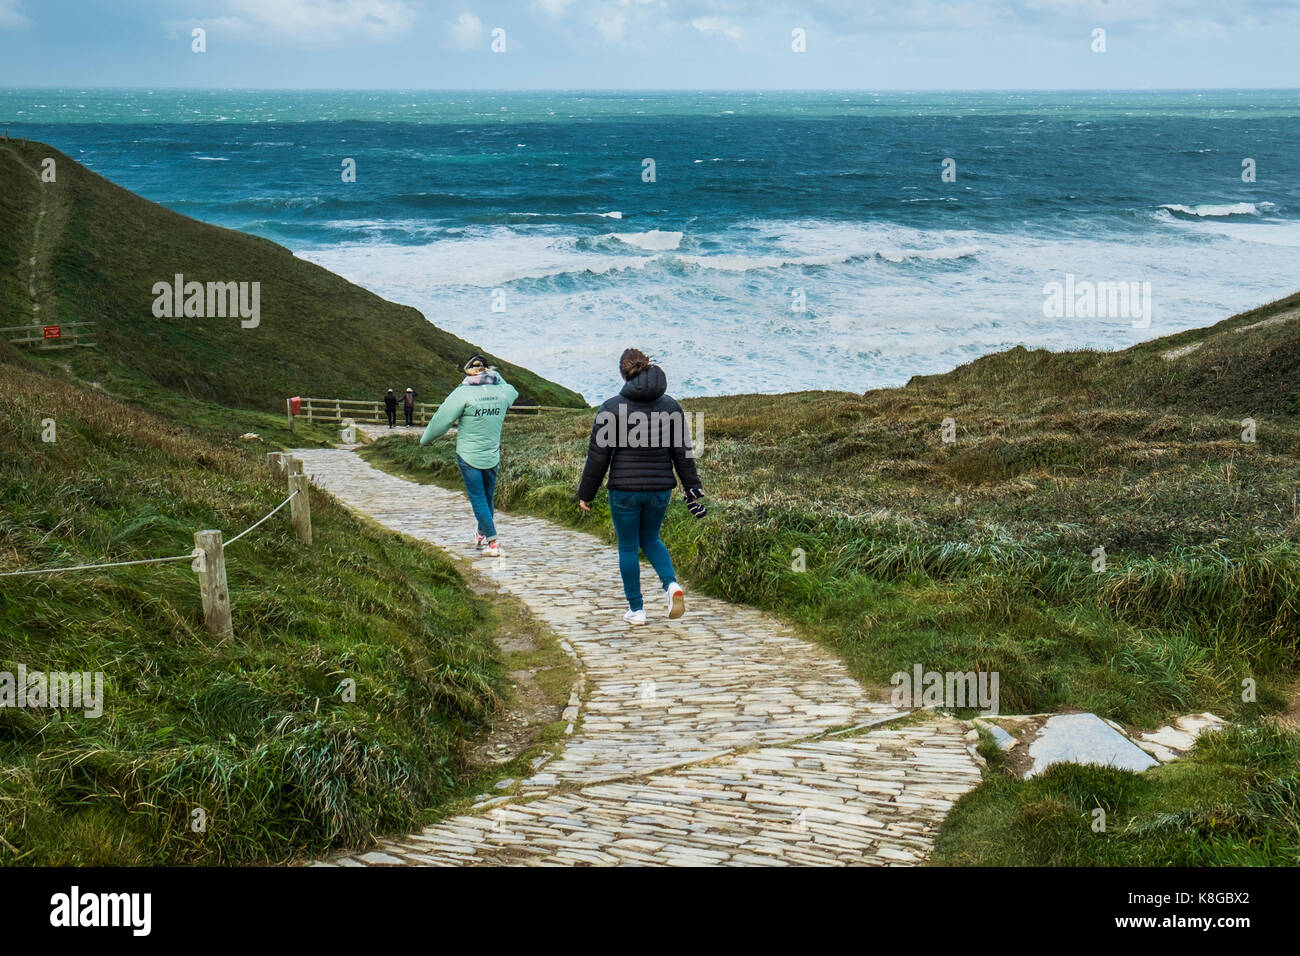 Bedruthan Steps - people walking down the coastal footpath at Bedruthan Steps on the North Cornwall coast. - Stock Image